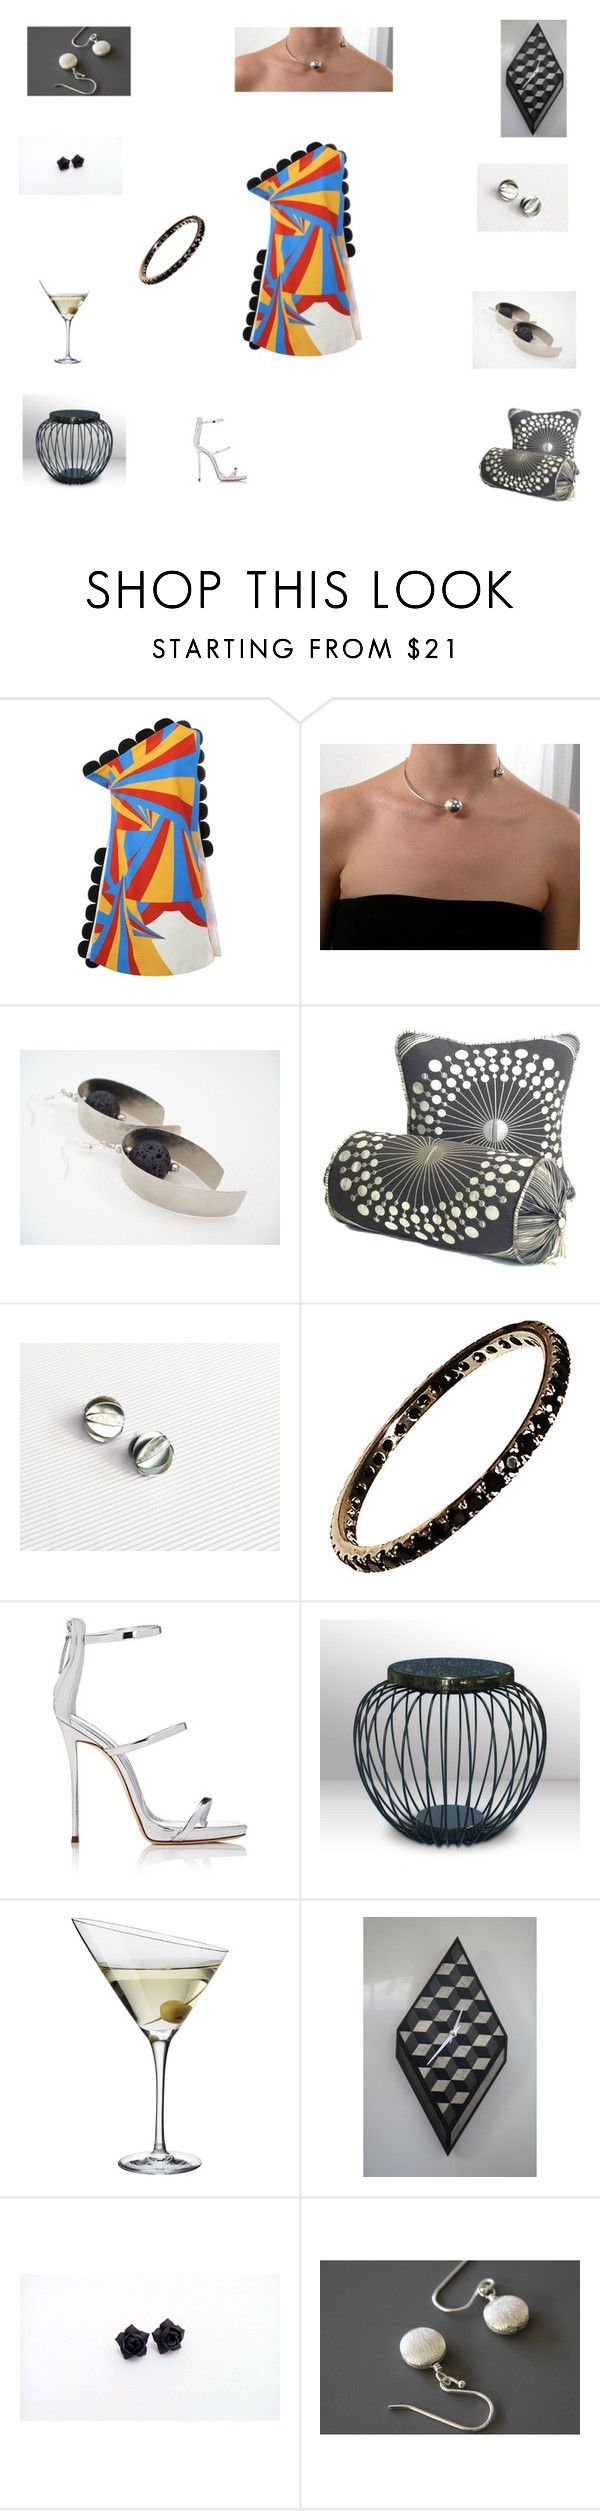 Jewelry For Her by einder on Polyvore featuring moda, Victoria, Victoria Beckham, Giuseppe Zanotti and Eva Solo